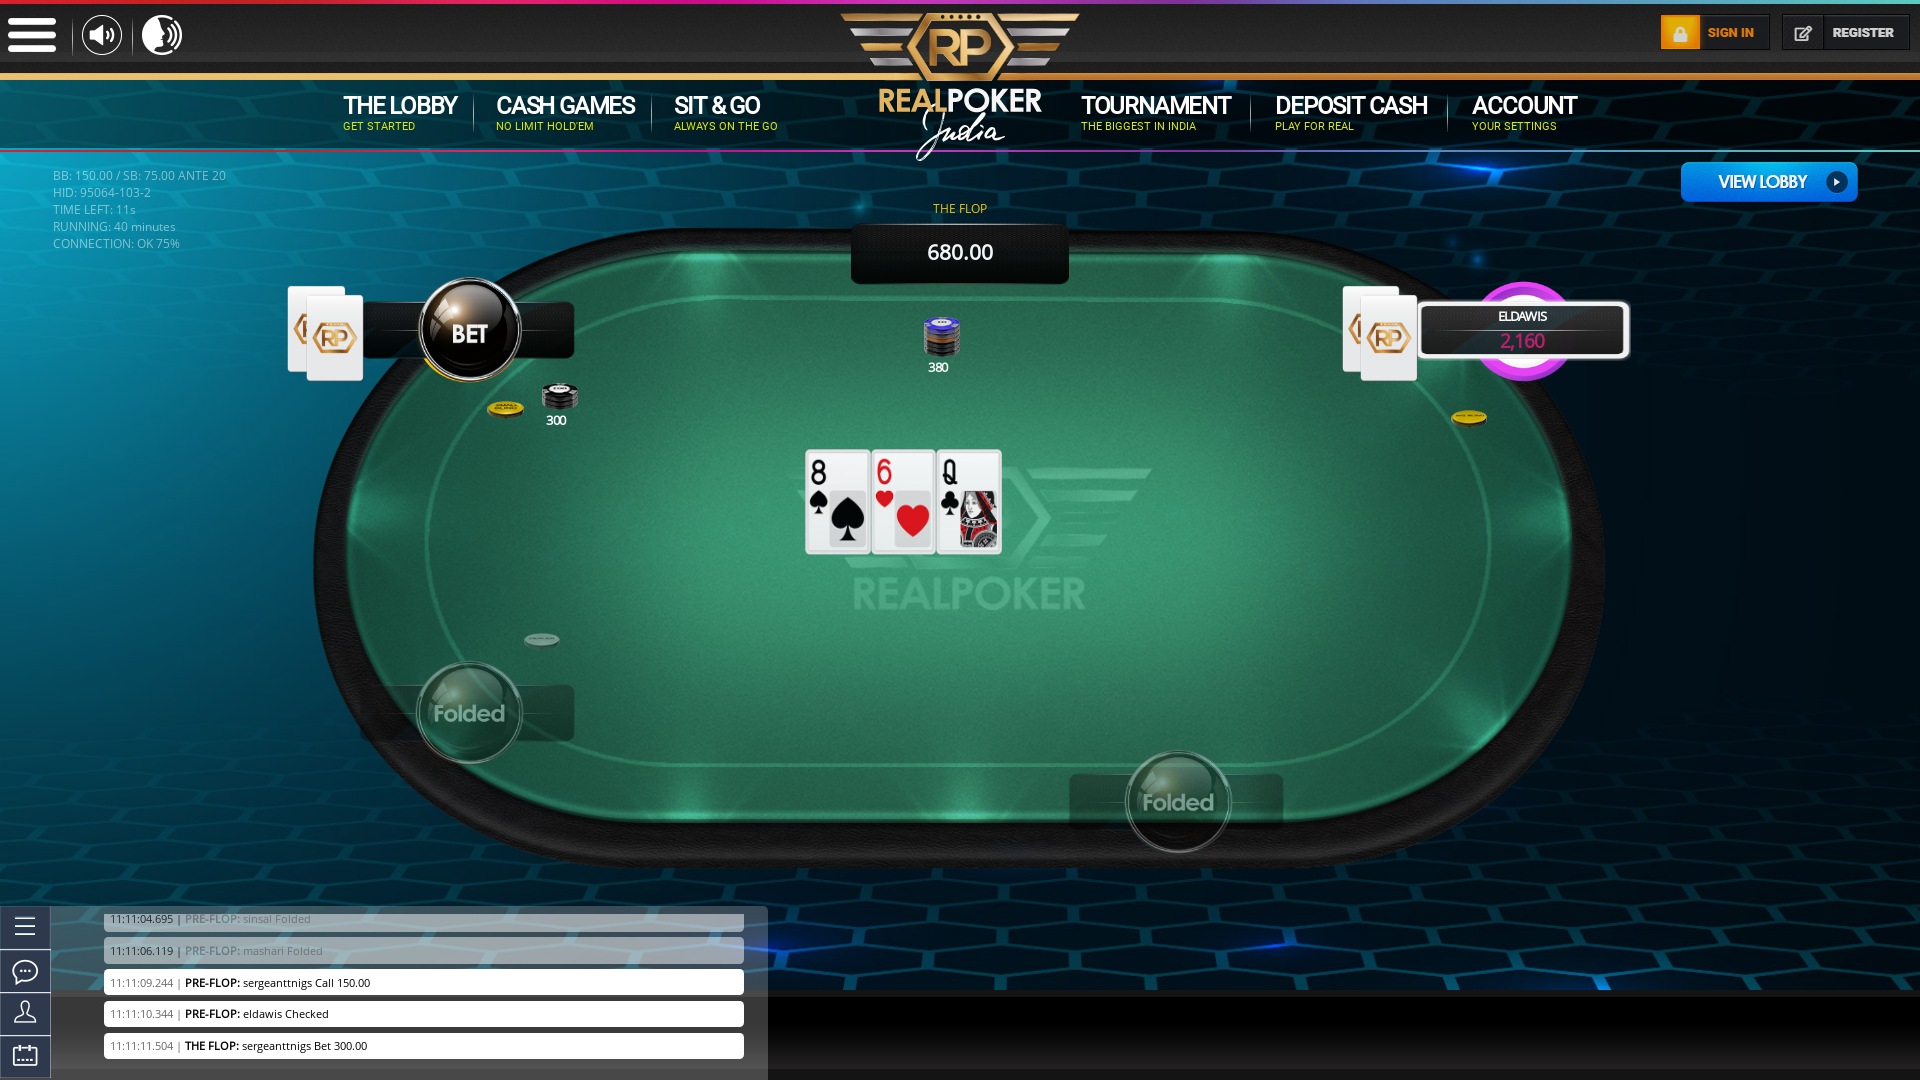 Indian 10 player poker in the 40th minute